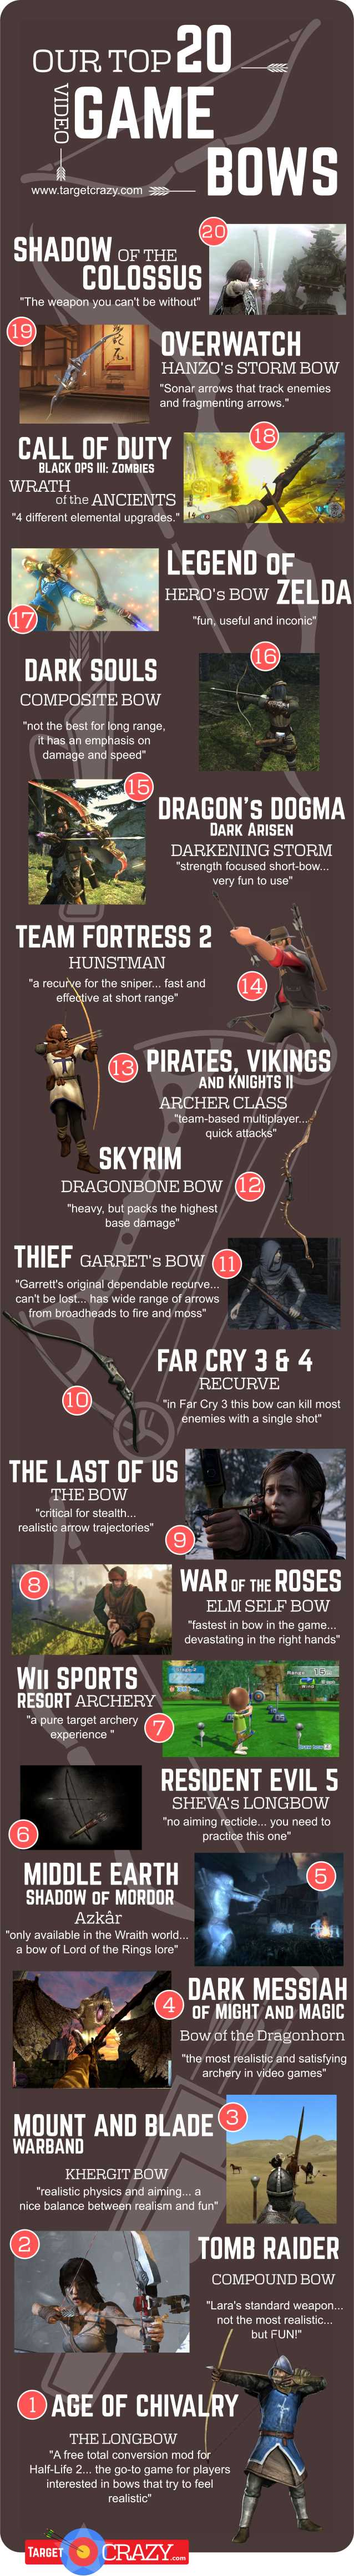 Our Top 20 Video Game Bows